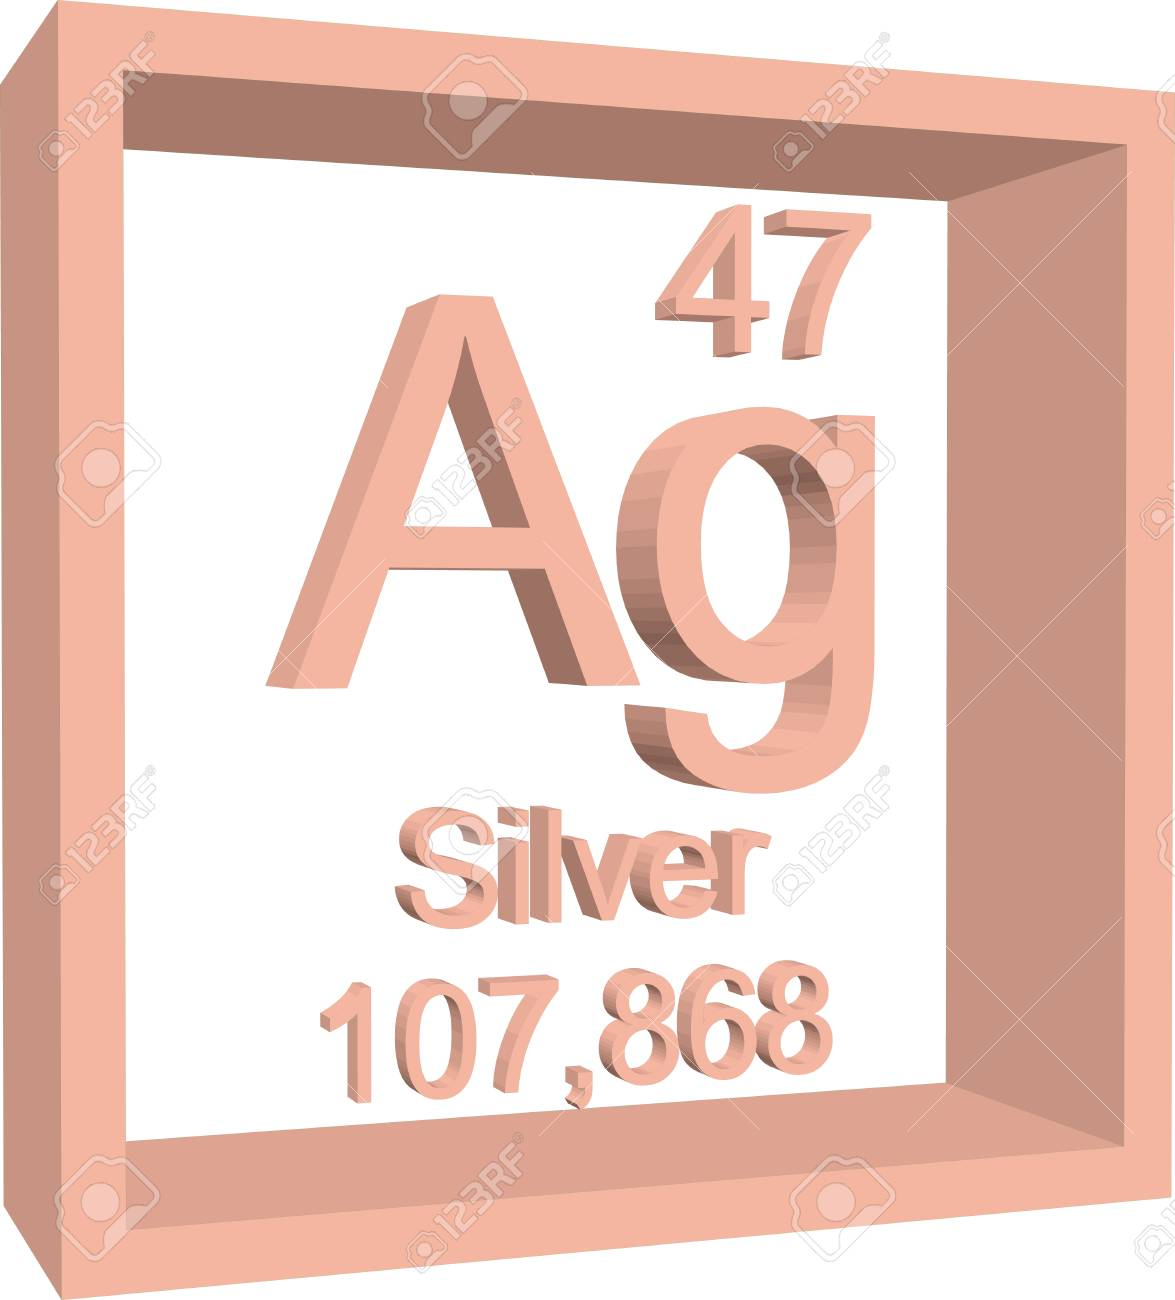 Periodic table of elements silver royalty free cliparts vectors periodic table of elements silver stock vector 57967517 urtaz